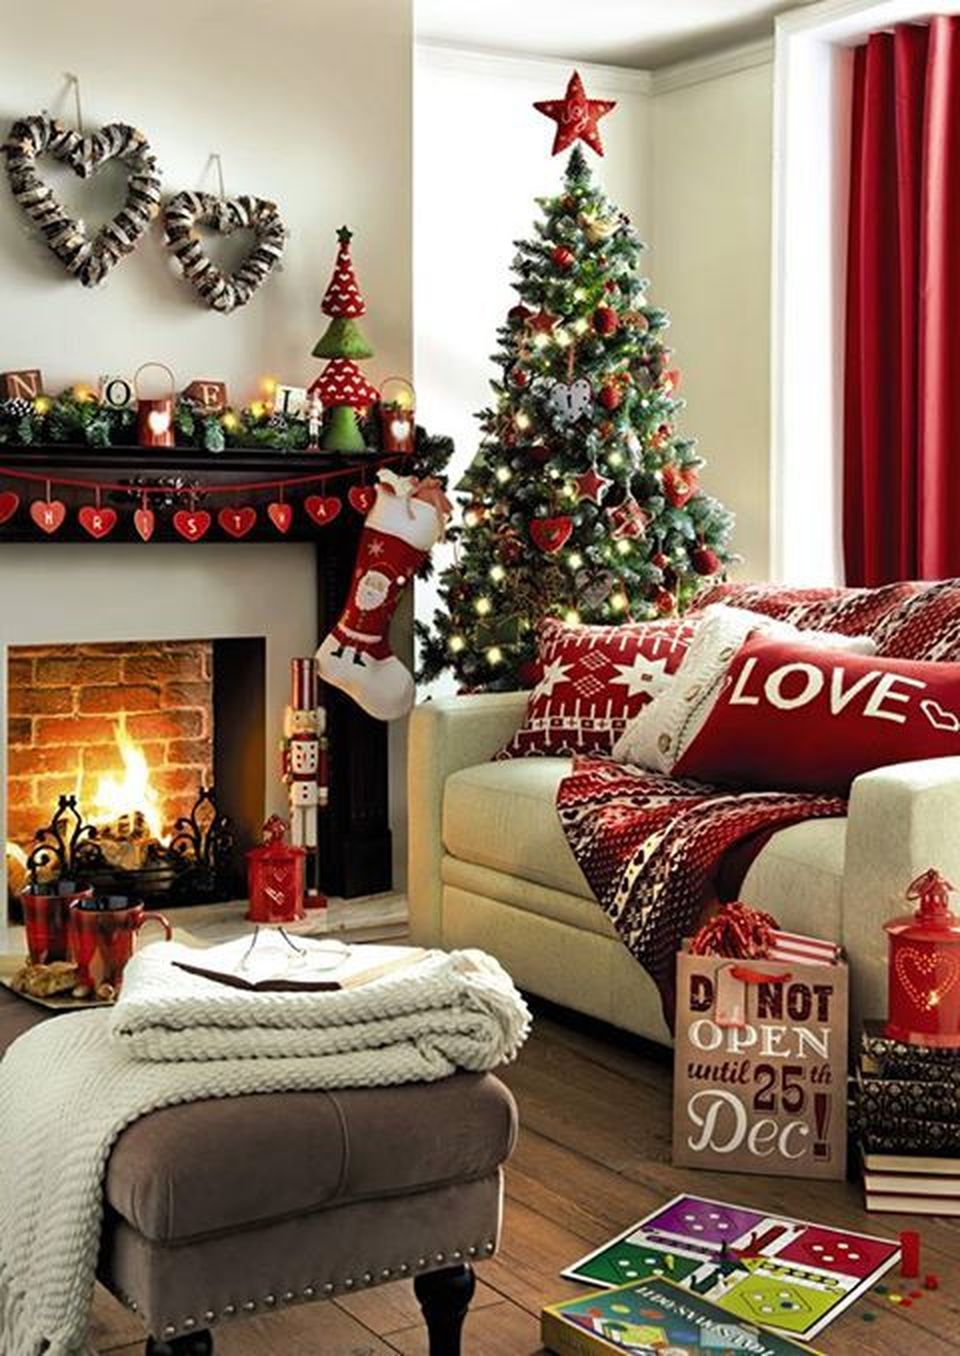 Christmas Decorations Ideas for the Home 94 , Hoommy.com